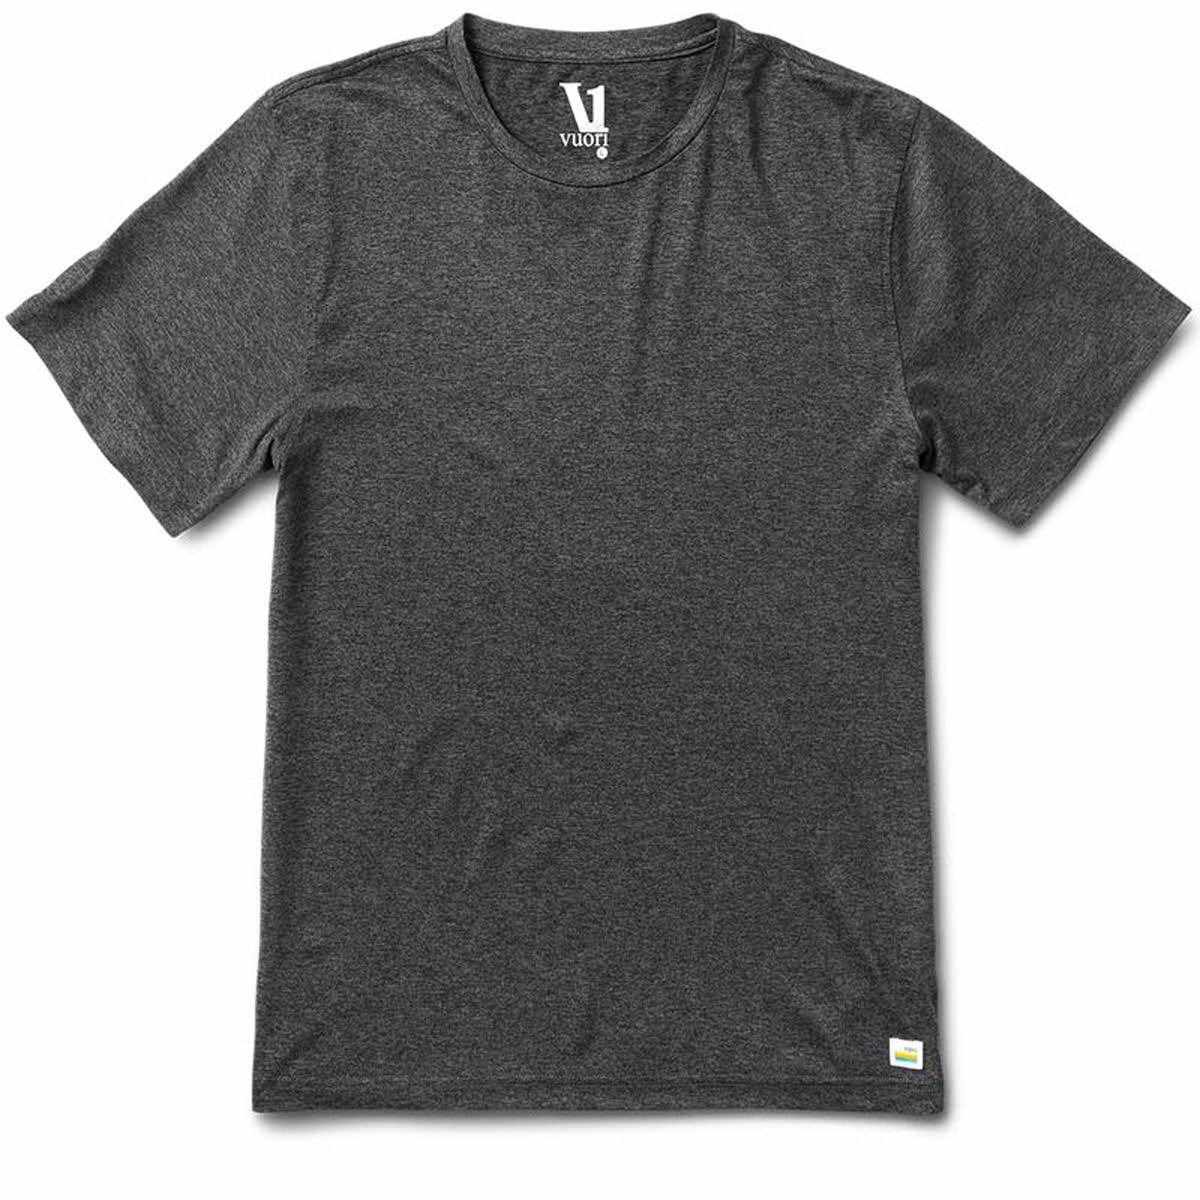 Vuori Men's Strato Tech Tee - Heather Charcoal